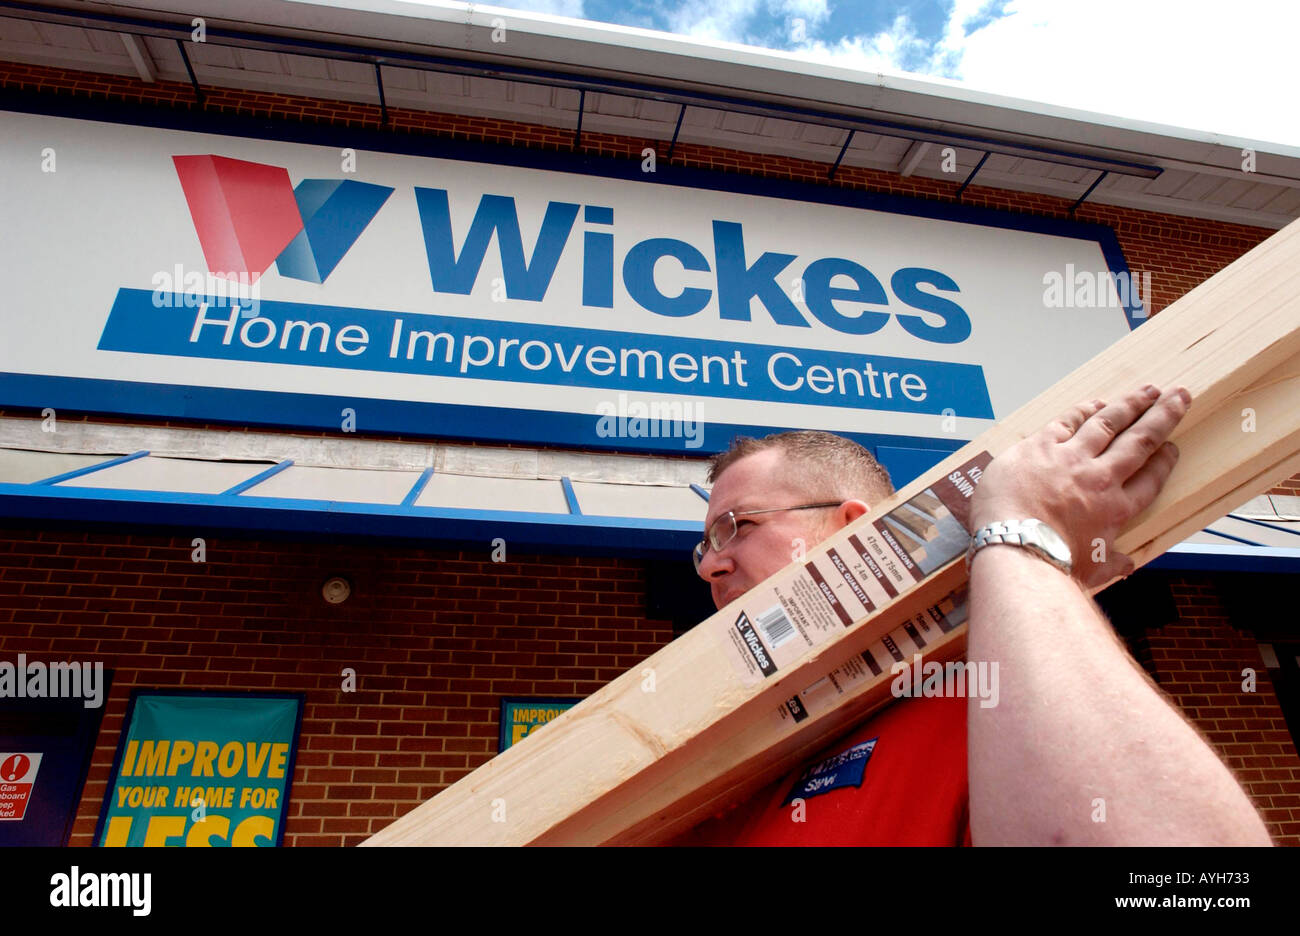 Wickes Stock Photos & Wickes Stock Images - Alamy